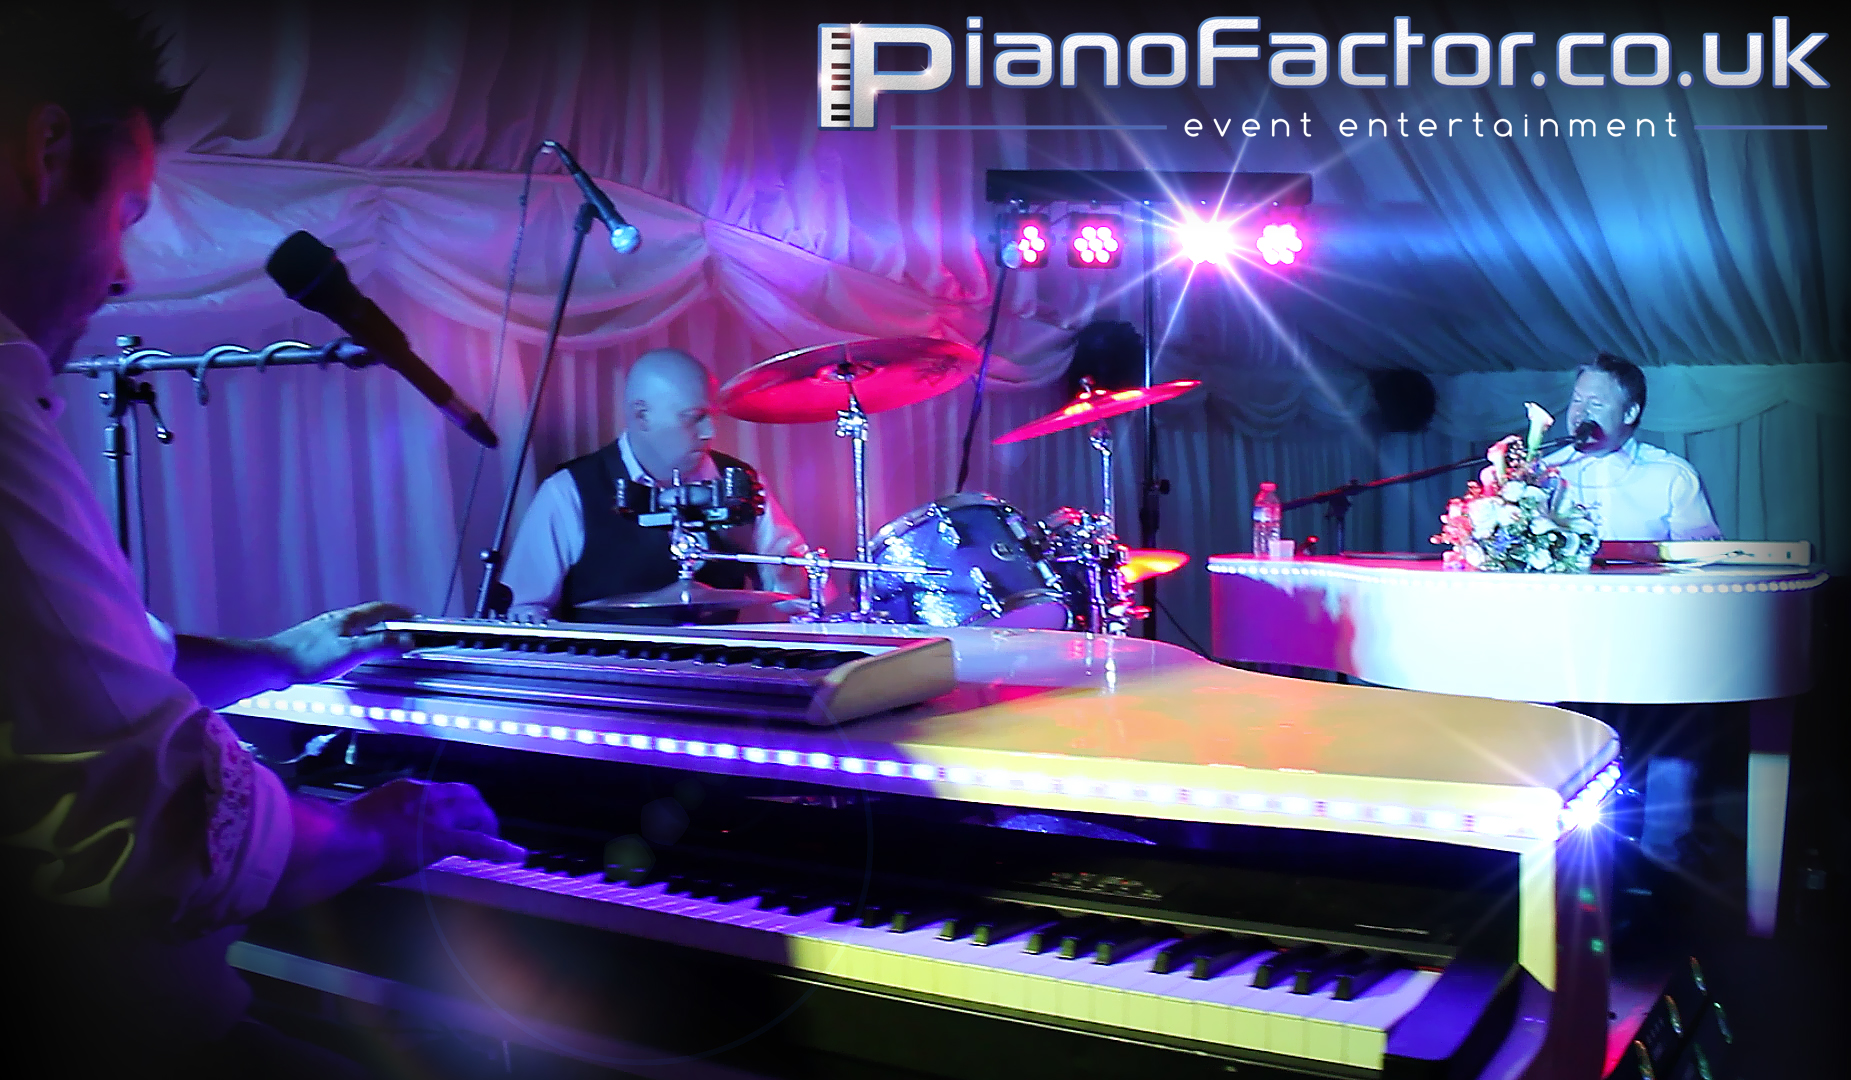 duelling-pianos-side.jpg: 9151 bytes